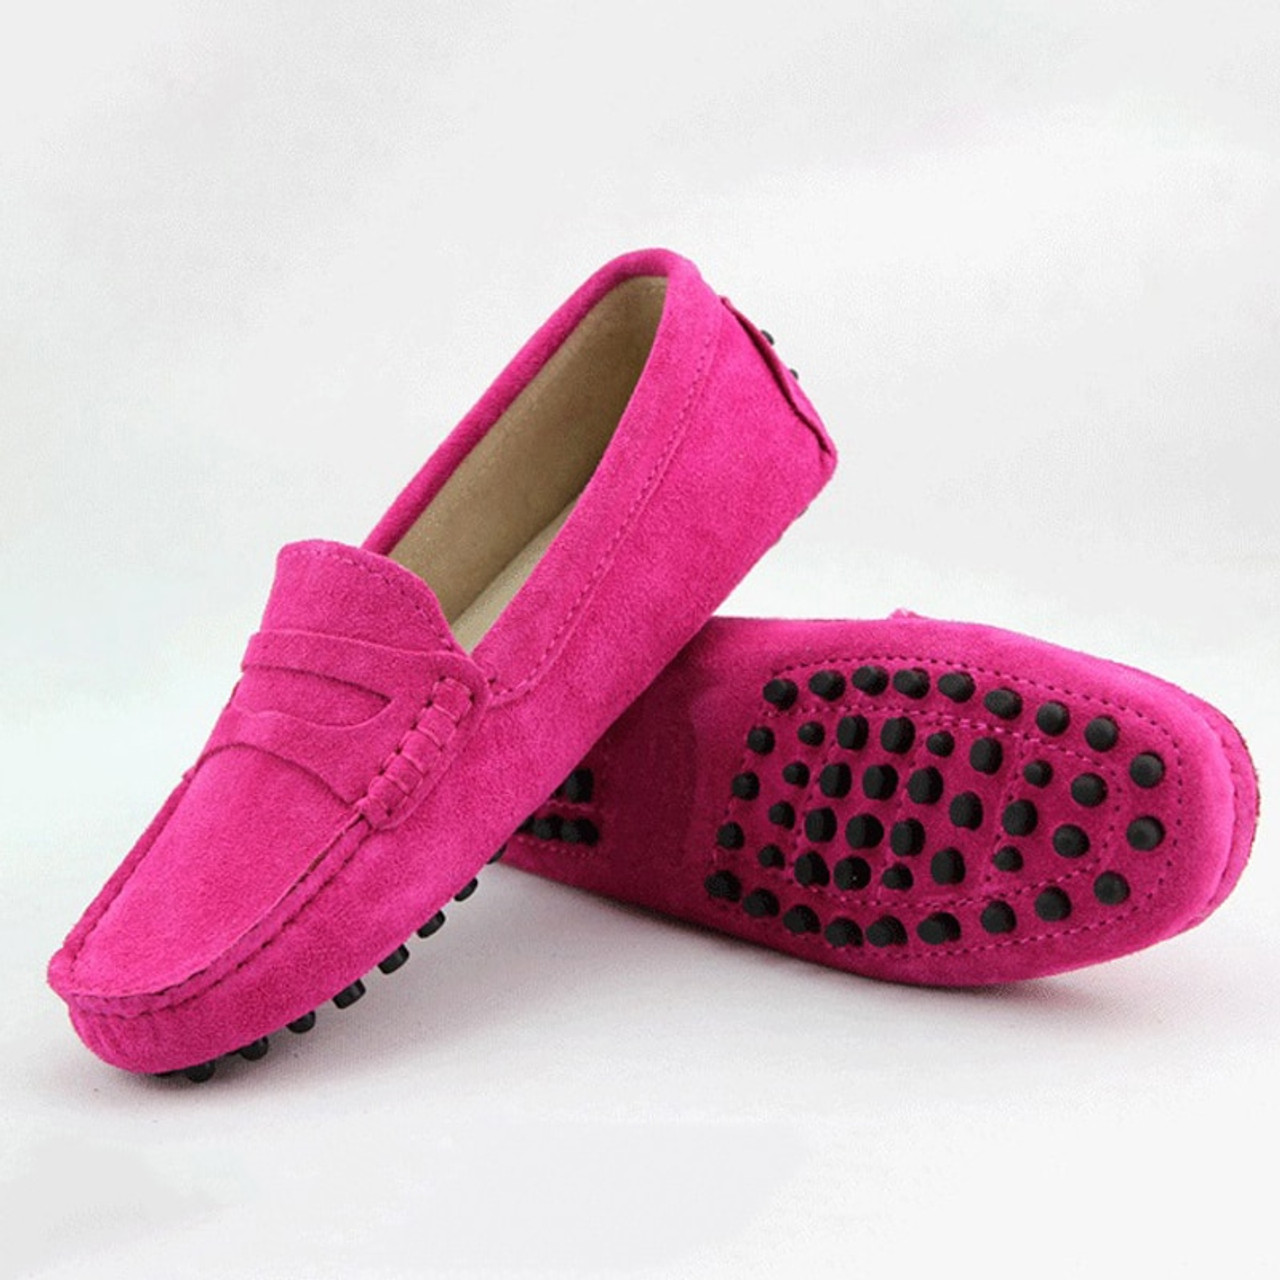 New Genuine Leather Women Flat Shoes Casual Loafers Slip On Womens Flats Shoes Moccasins Lady Driving Sh Yellow